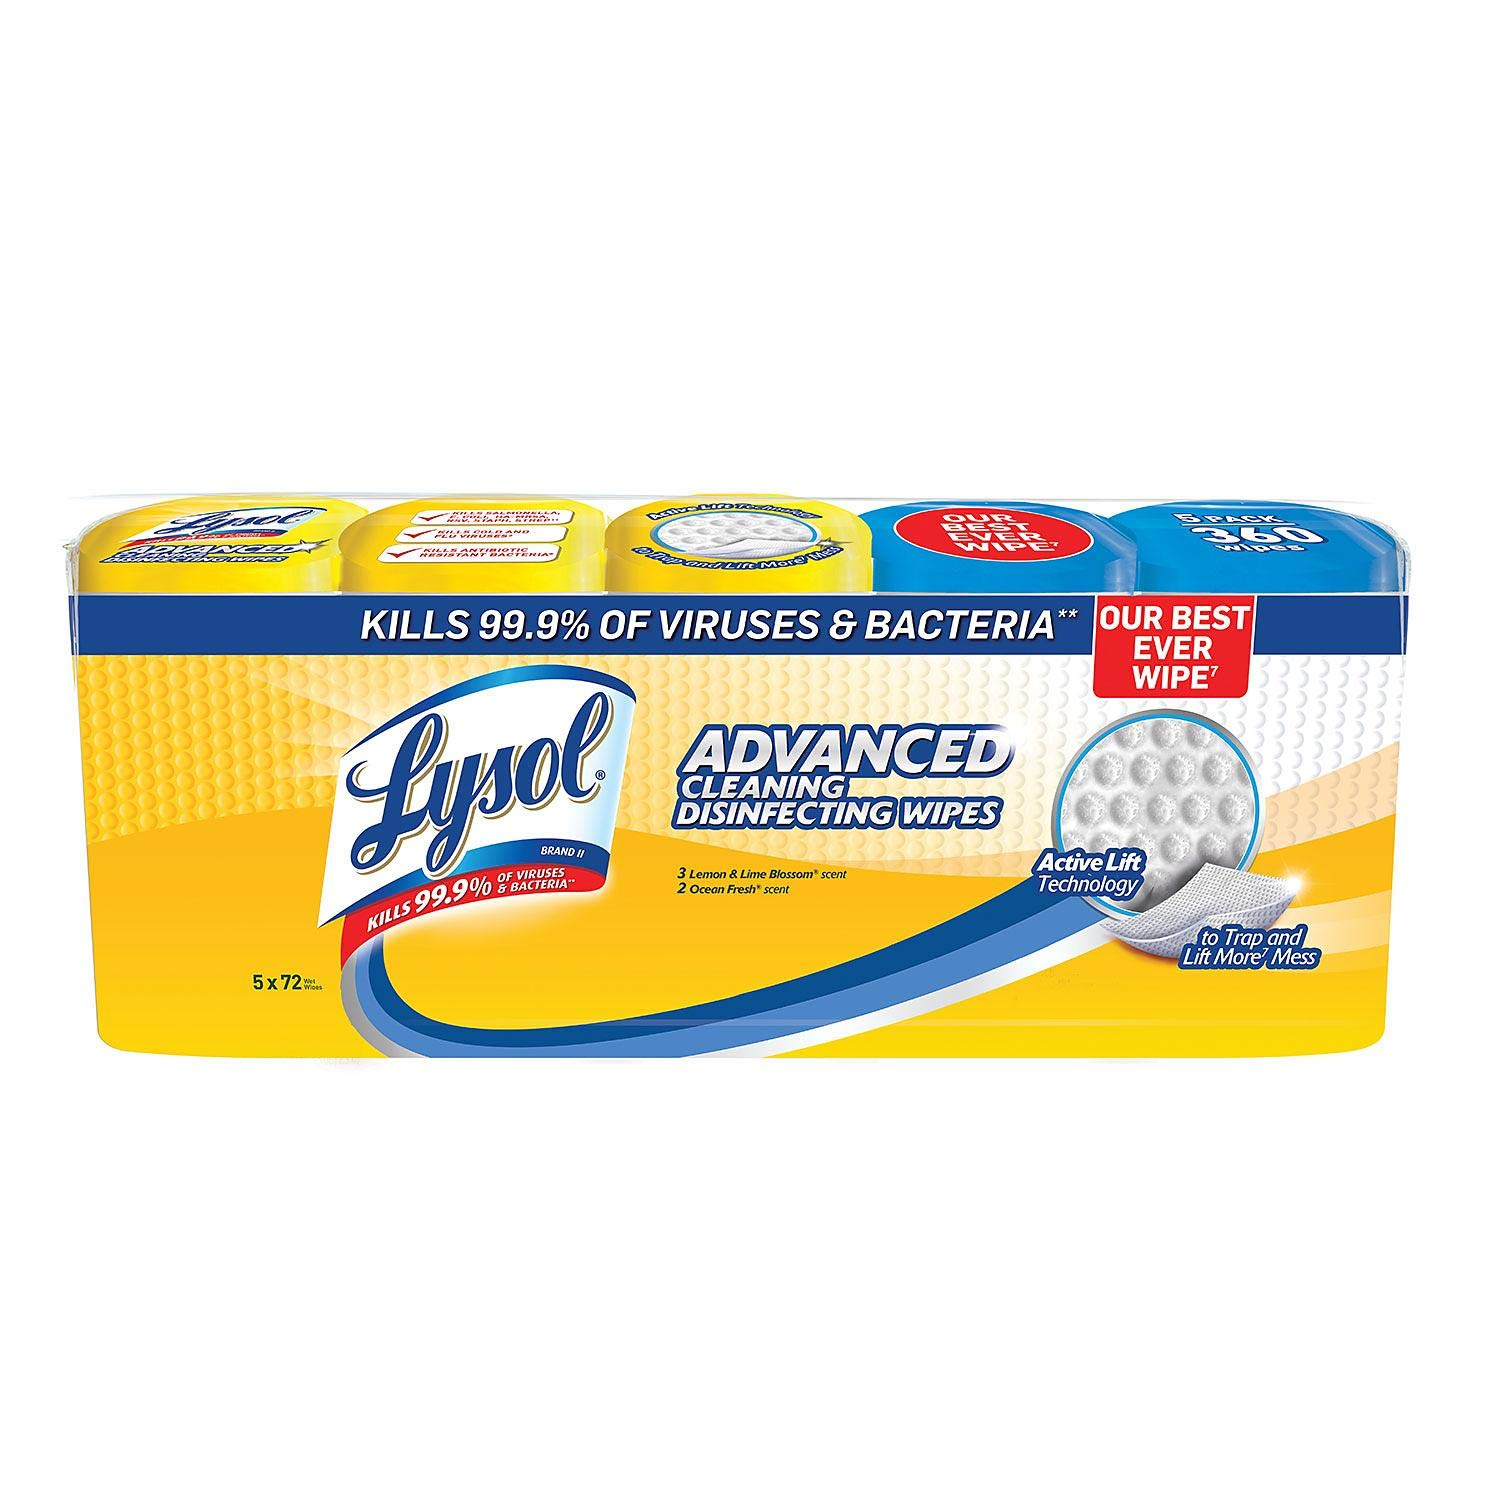 An item of Lysol Advanced Cleaning Disinfecting Wipes Variety Pack, 5 pk./72 ct. by Brand of Lysol (Image #1)